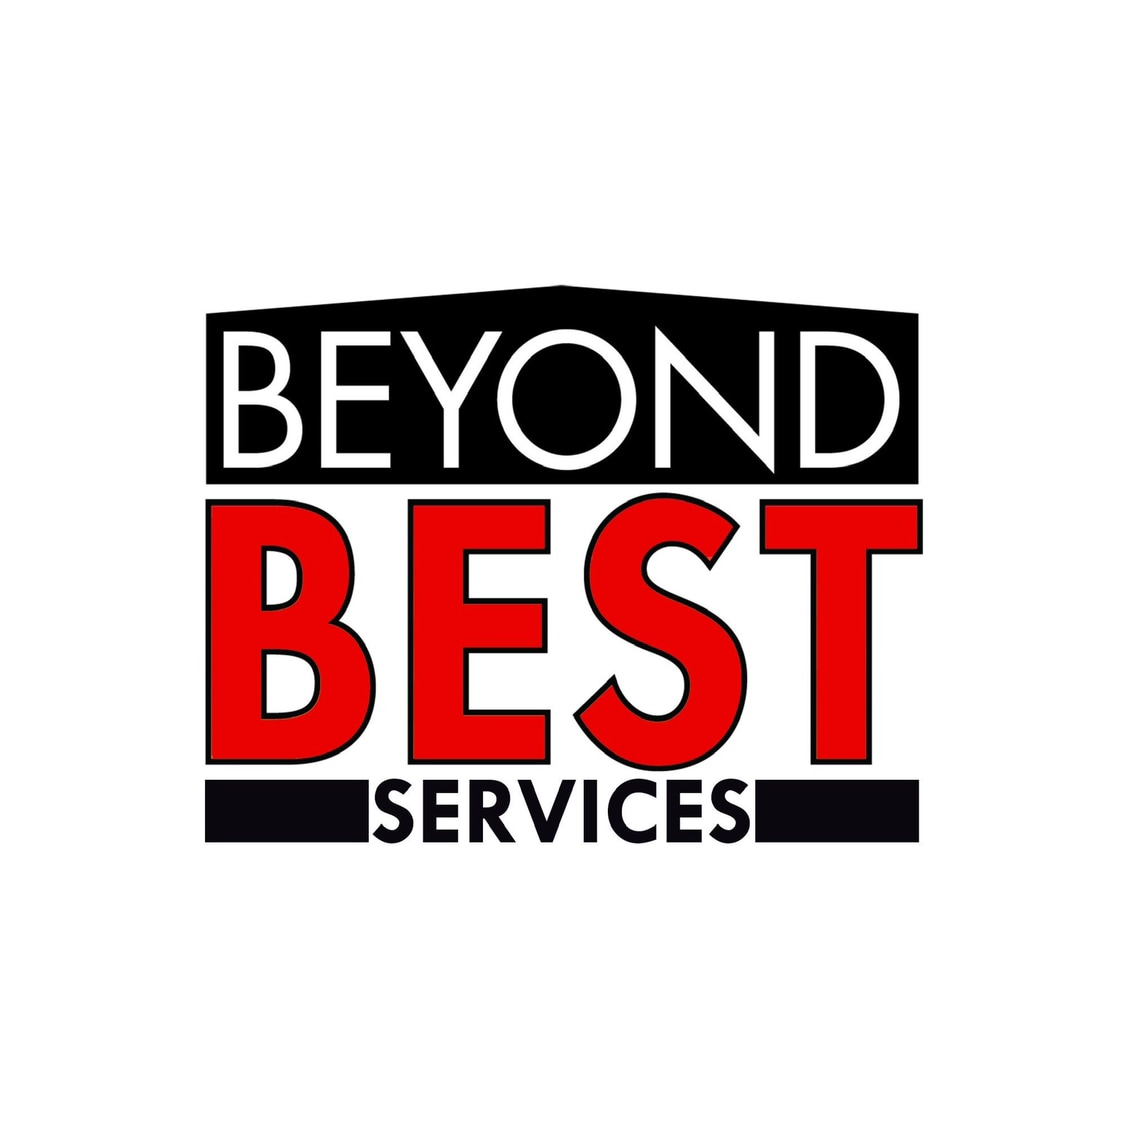 Beyond Best Services